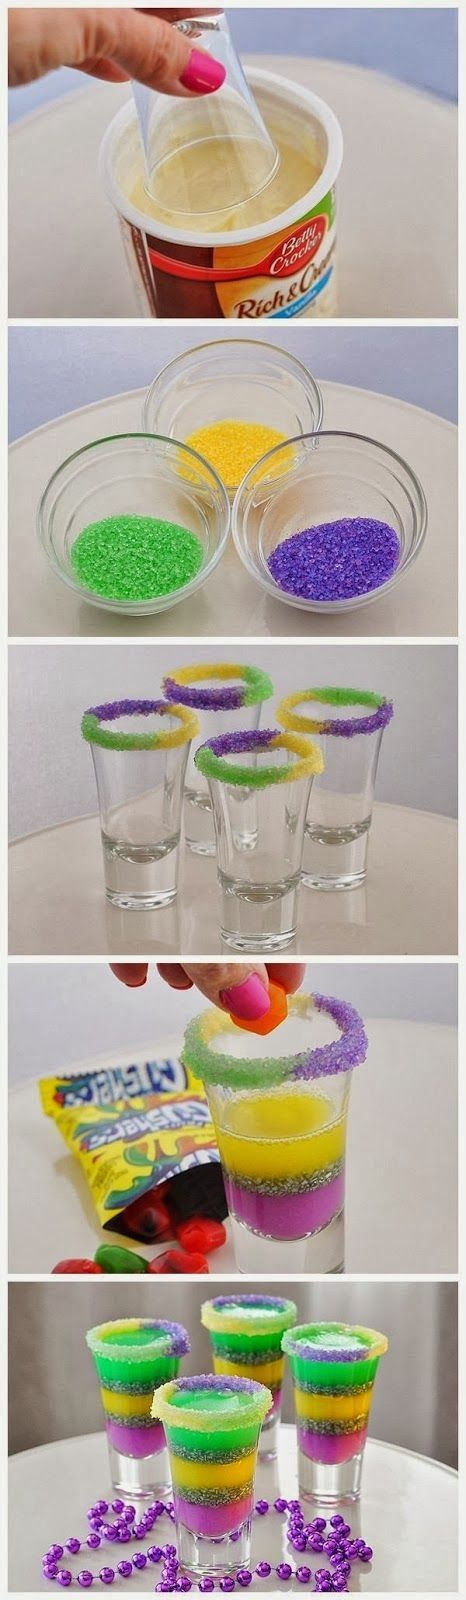 King Cake Jelly Shots. Unbelievably Cool! Gotta try for fun Mardi Gras party treat or change up colors for any other special theme party or ...